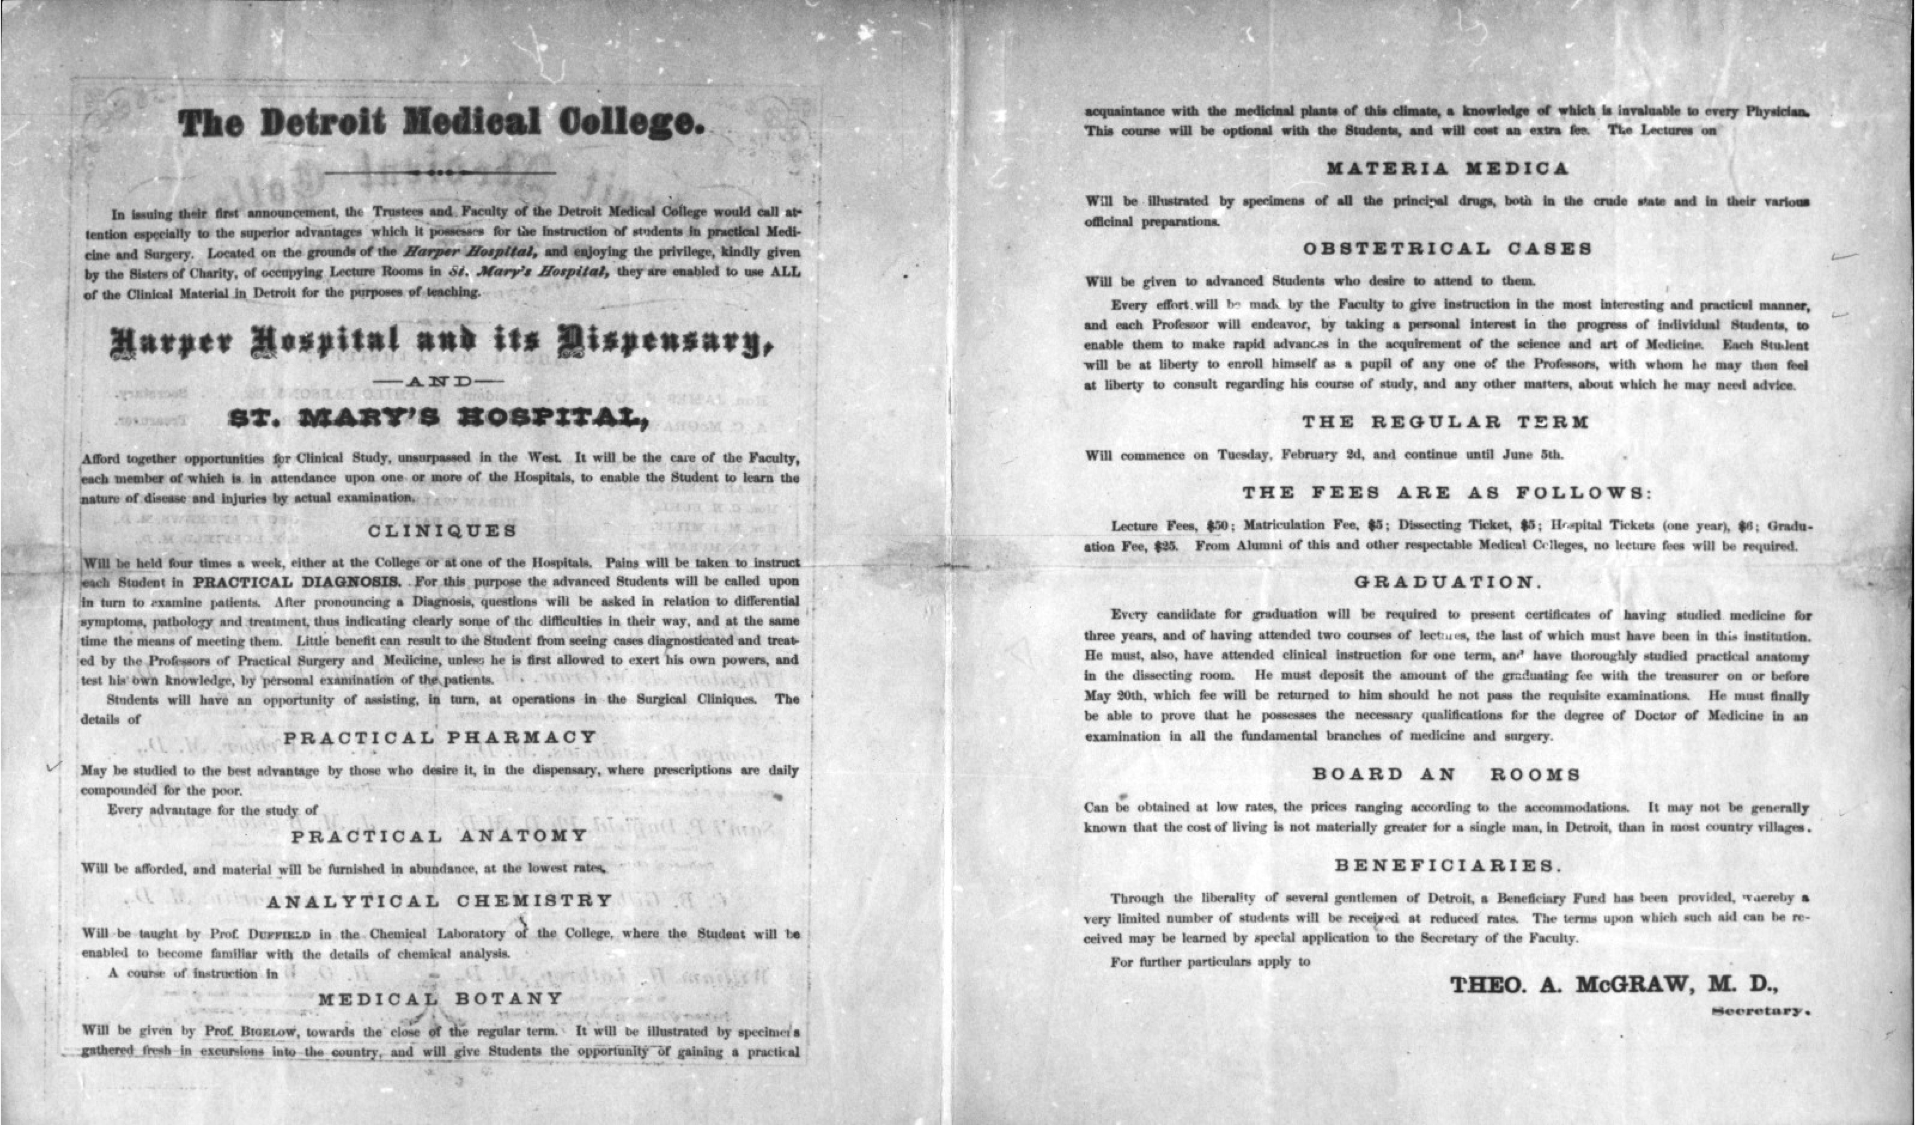 The Detroit College of Medicine charter from 1868, signed by founding physician Thodore A. McGraw, MD. The charter puts forth the founding principles of the institution.